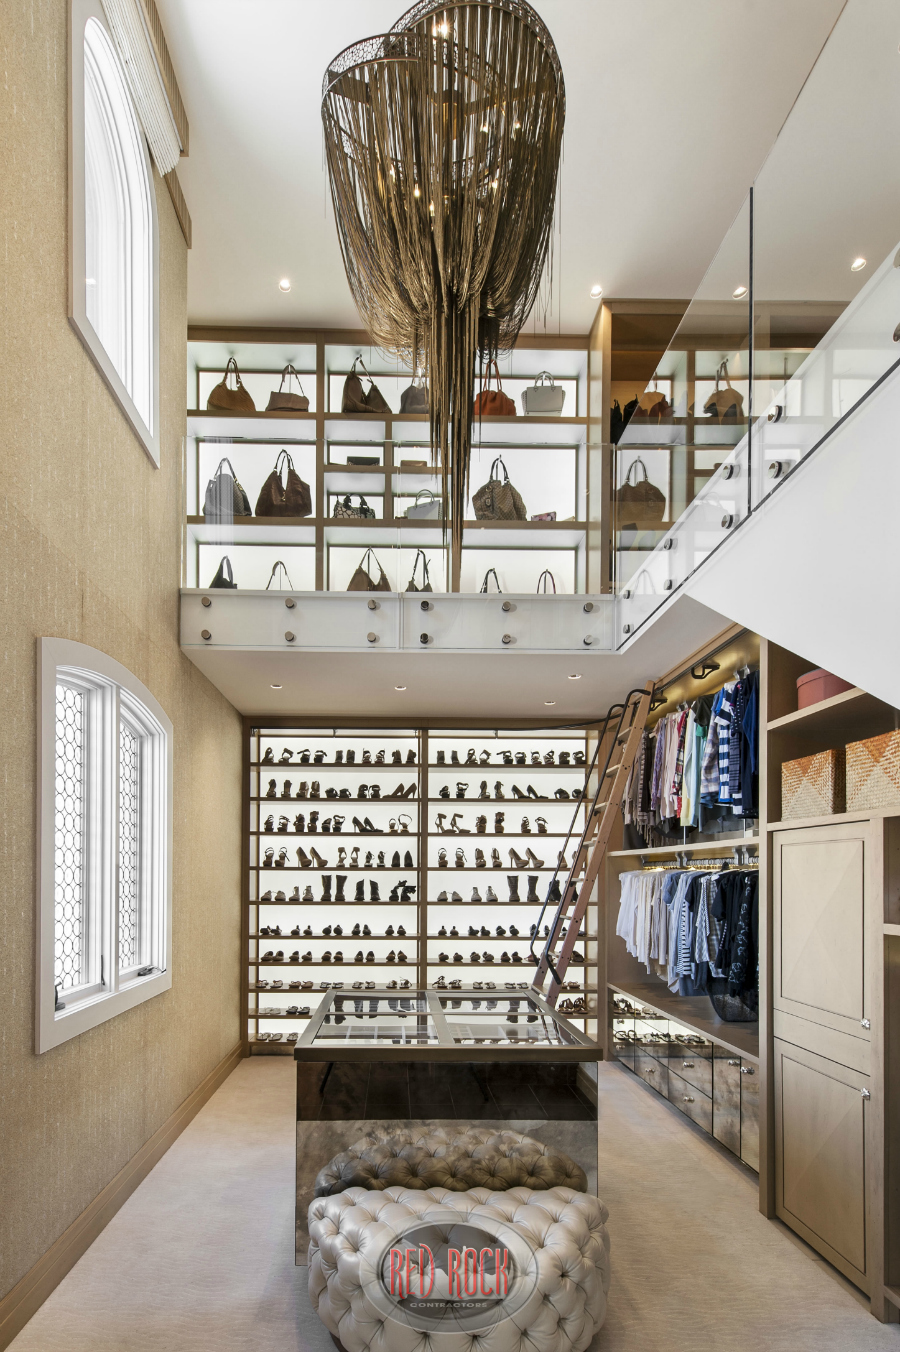 This Photo Showcases The Extensive Shoe And Handbag Storage Areas Of This  Luxurious 2 Story